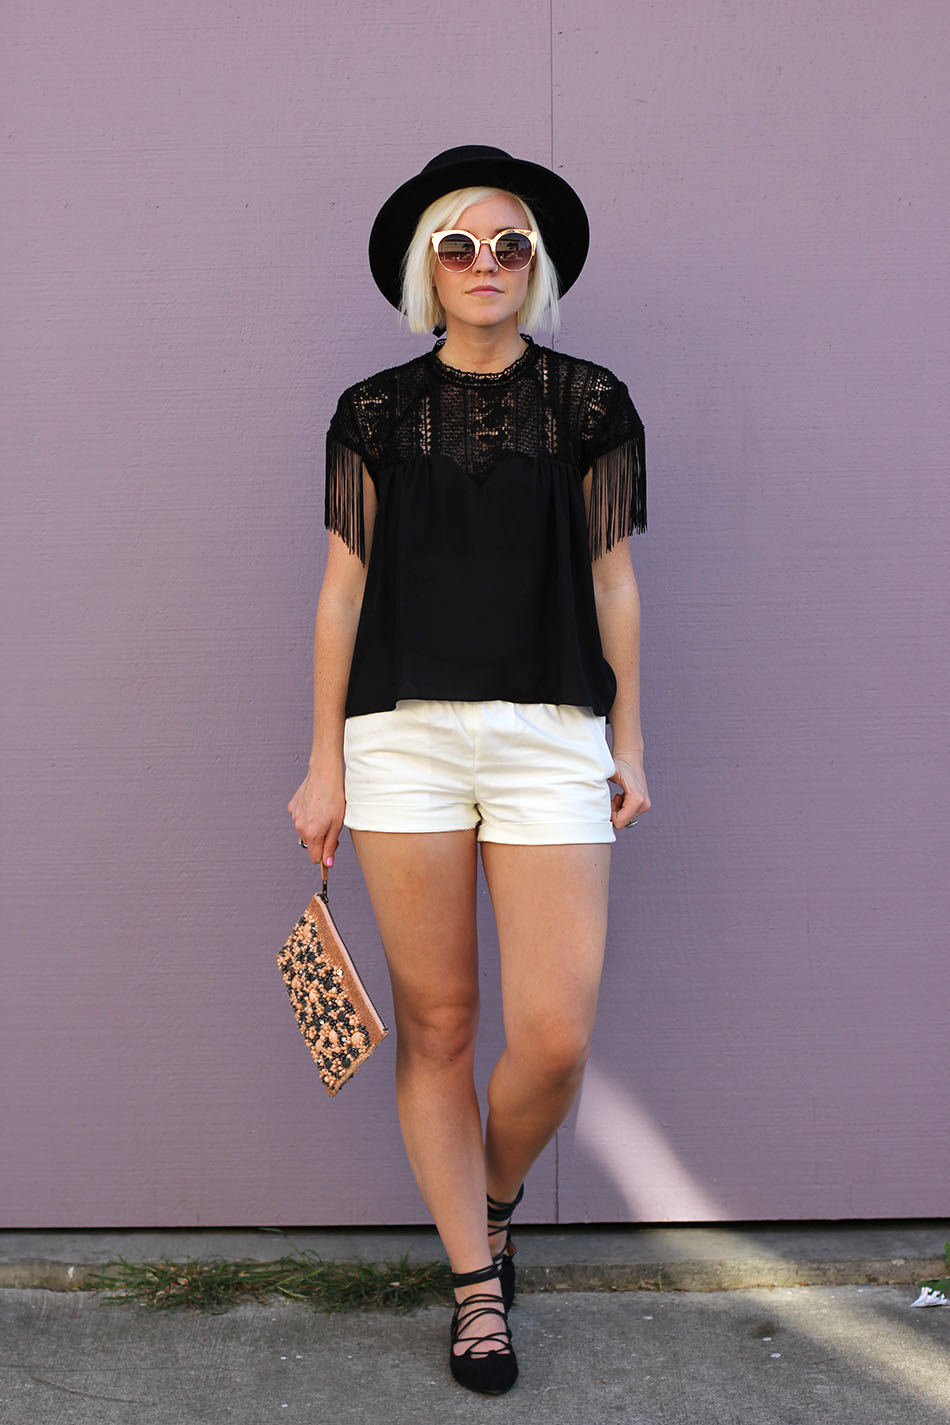 black and white with fringe outfit